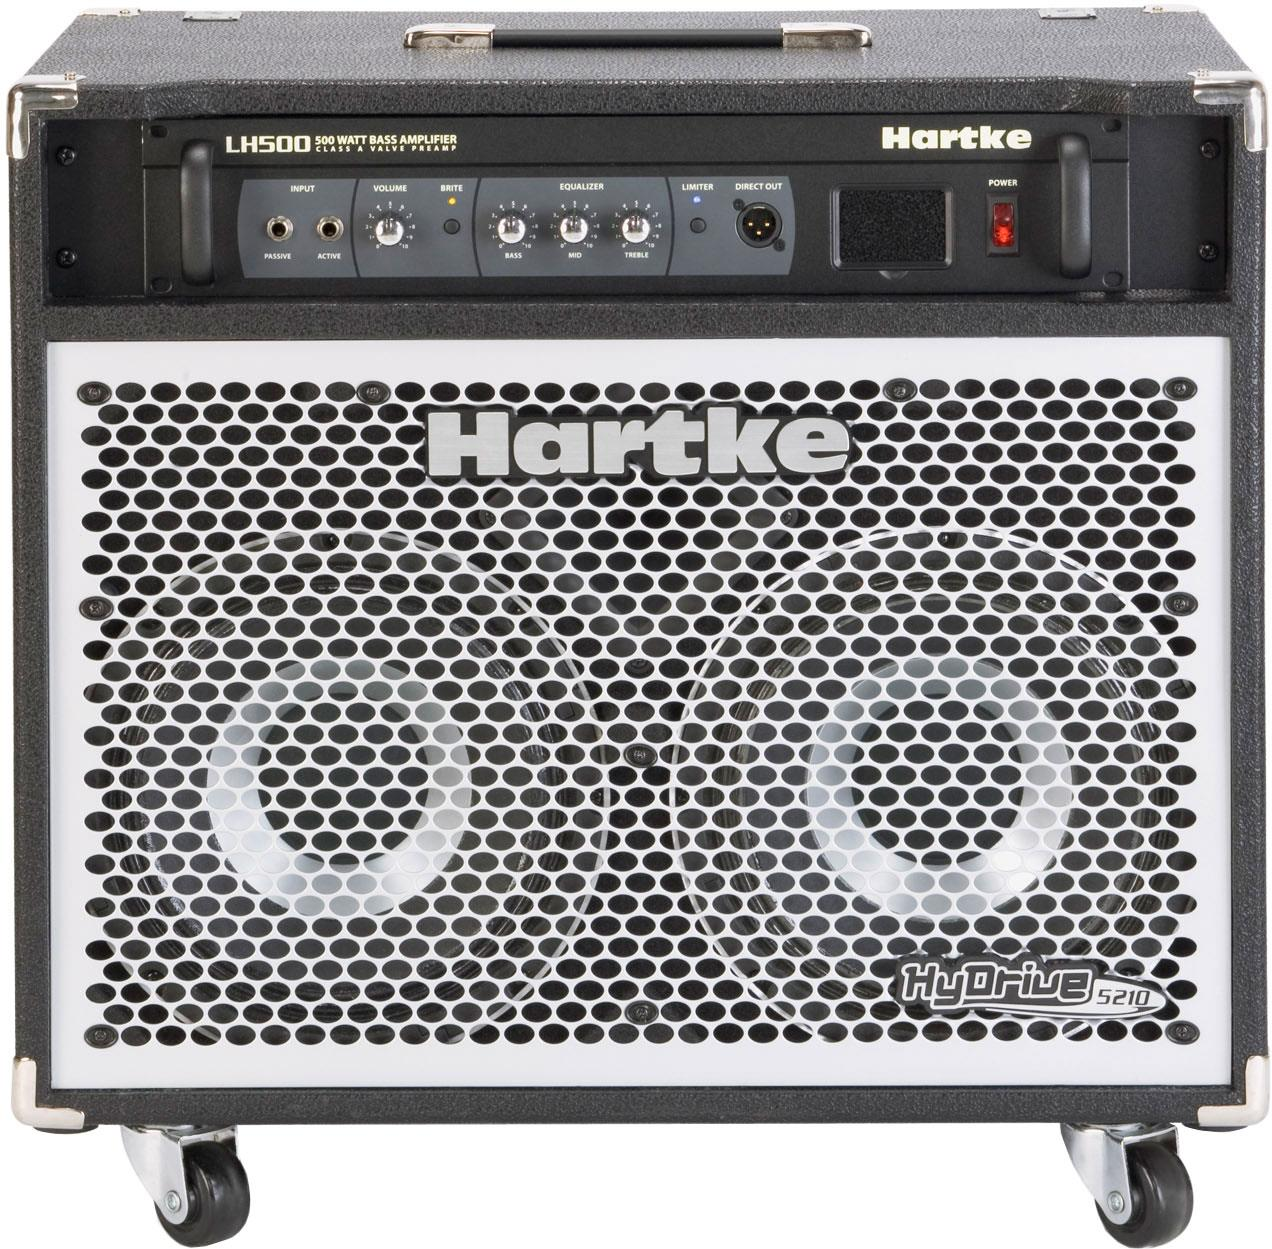 Hartke 5210c Hydrive Keymusic Voltage Limiter For Guitar Amplifiers Hybrid Bass Combo